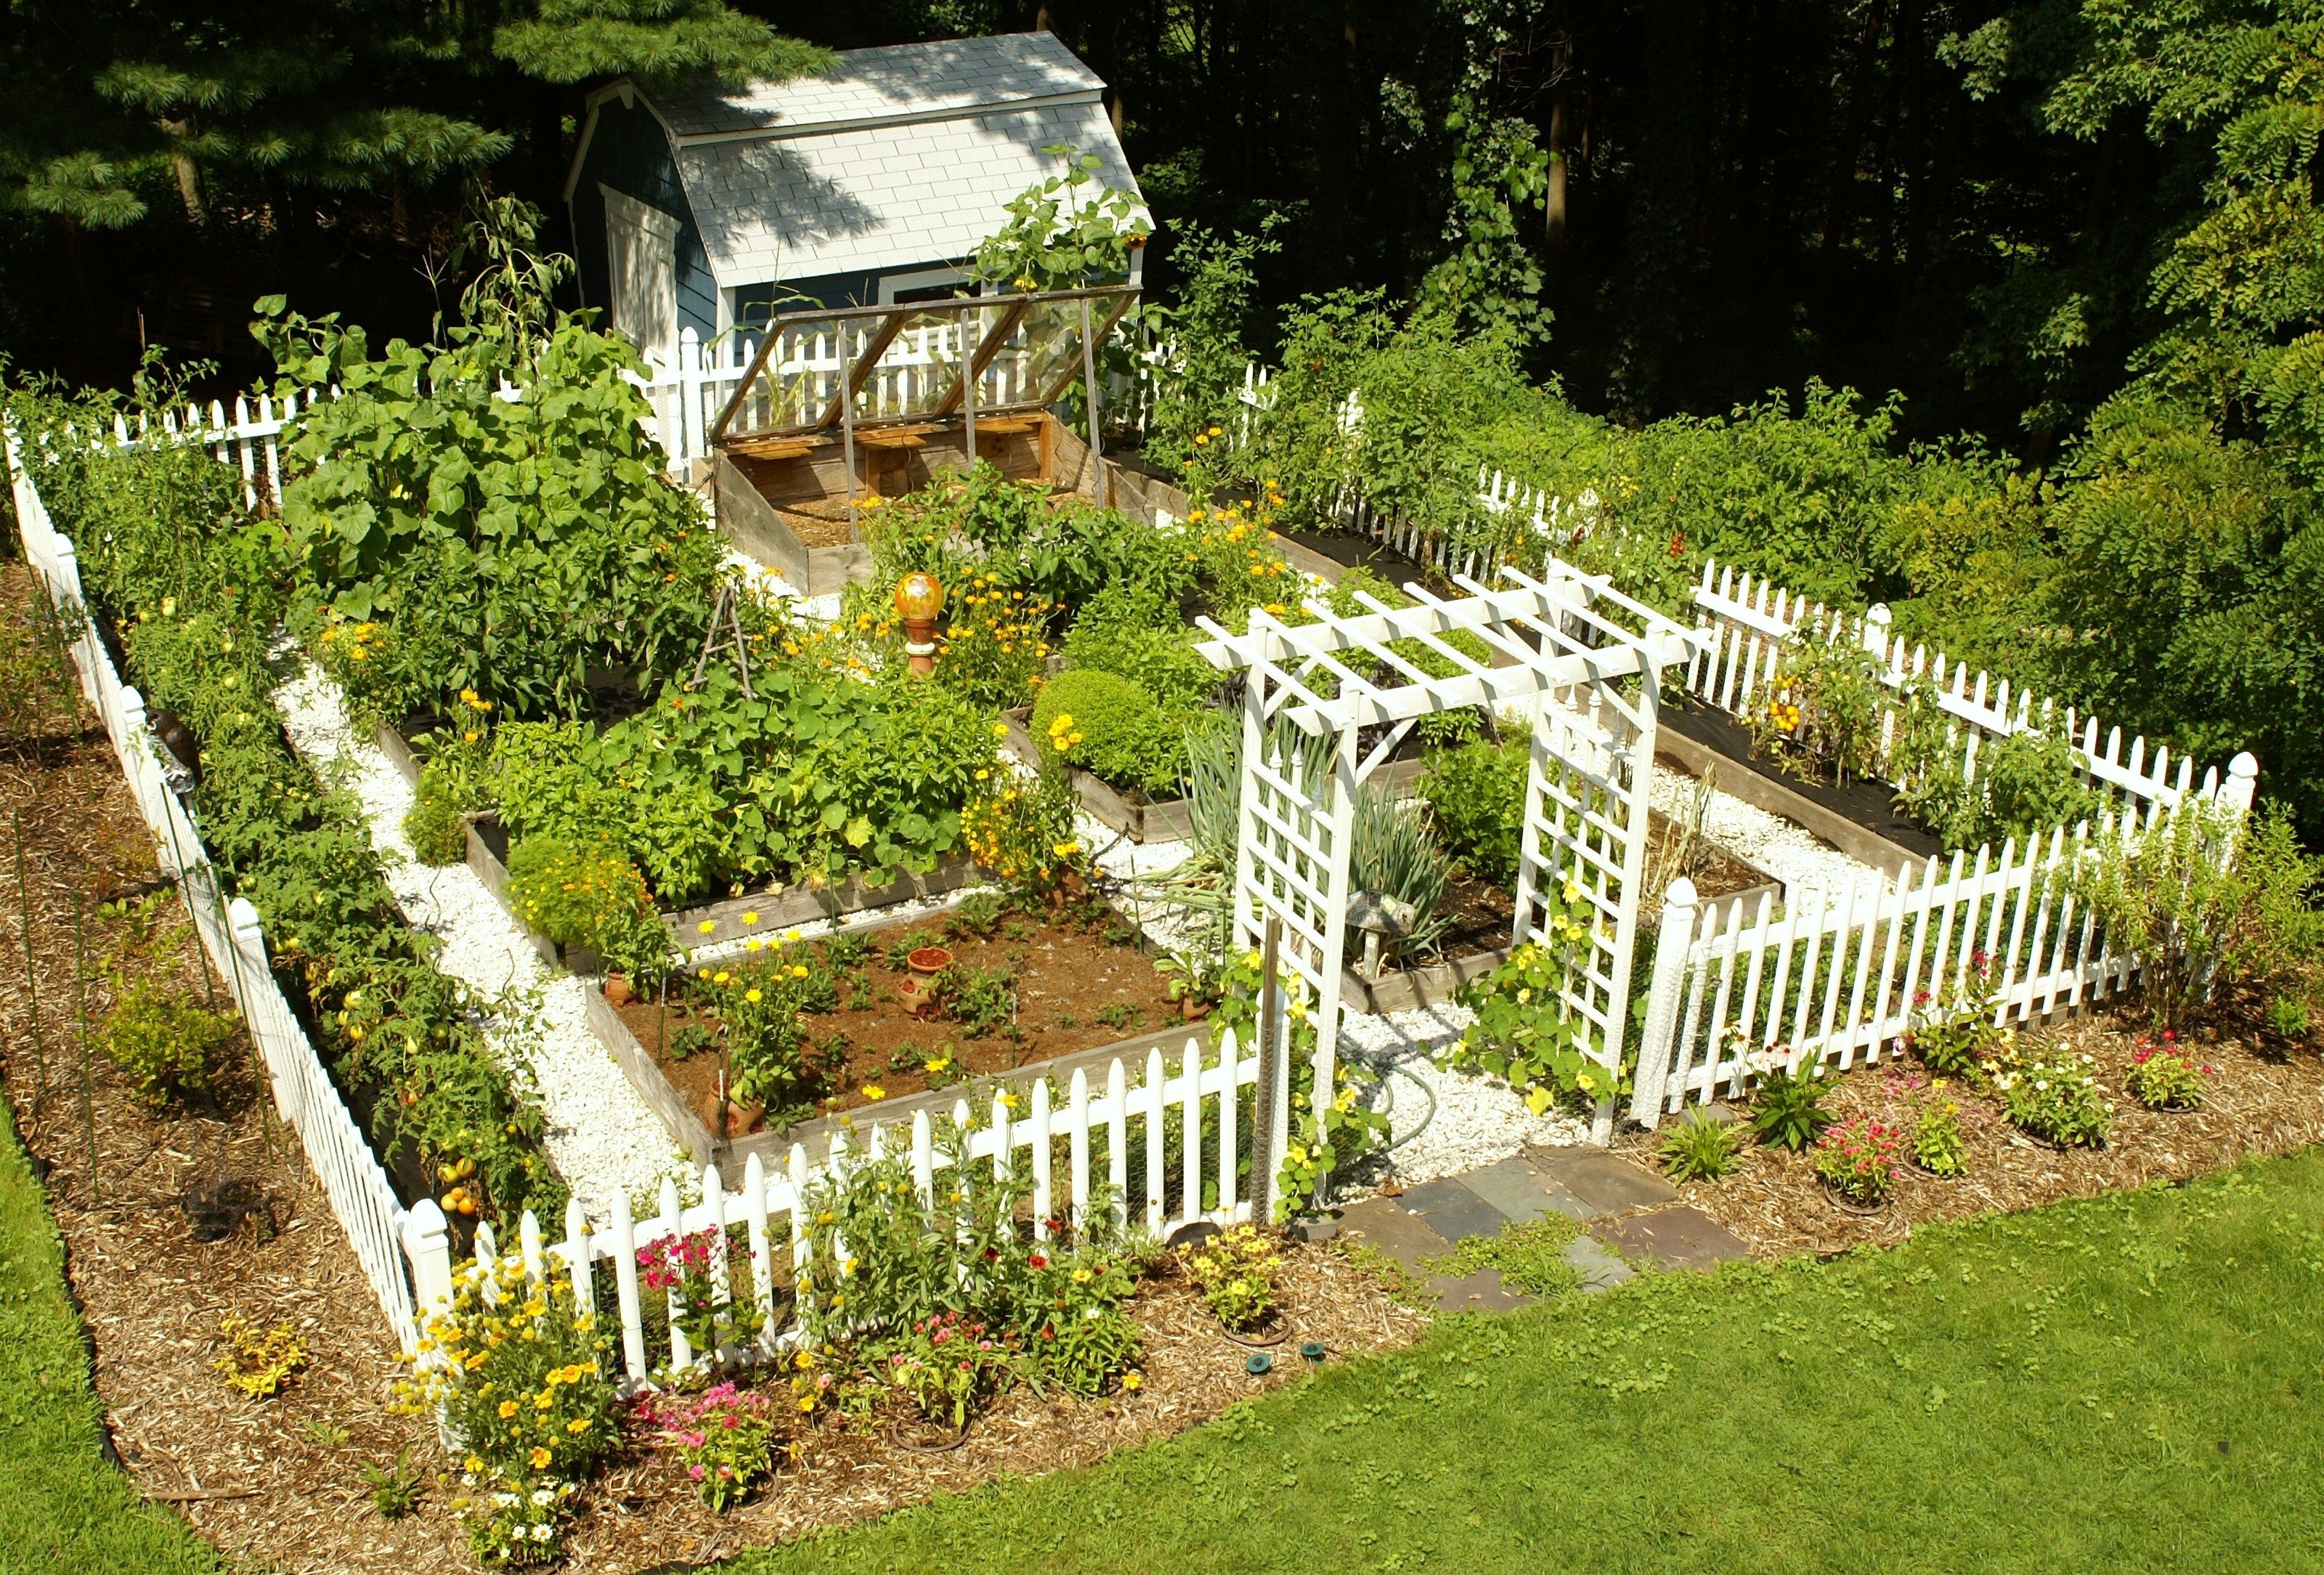 Vegetable Garden Plan Home Tender Smart Home Vegetable